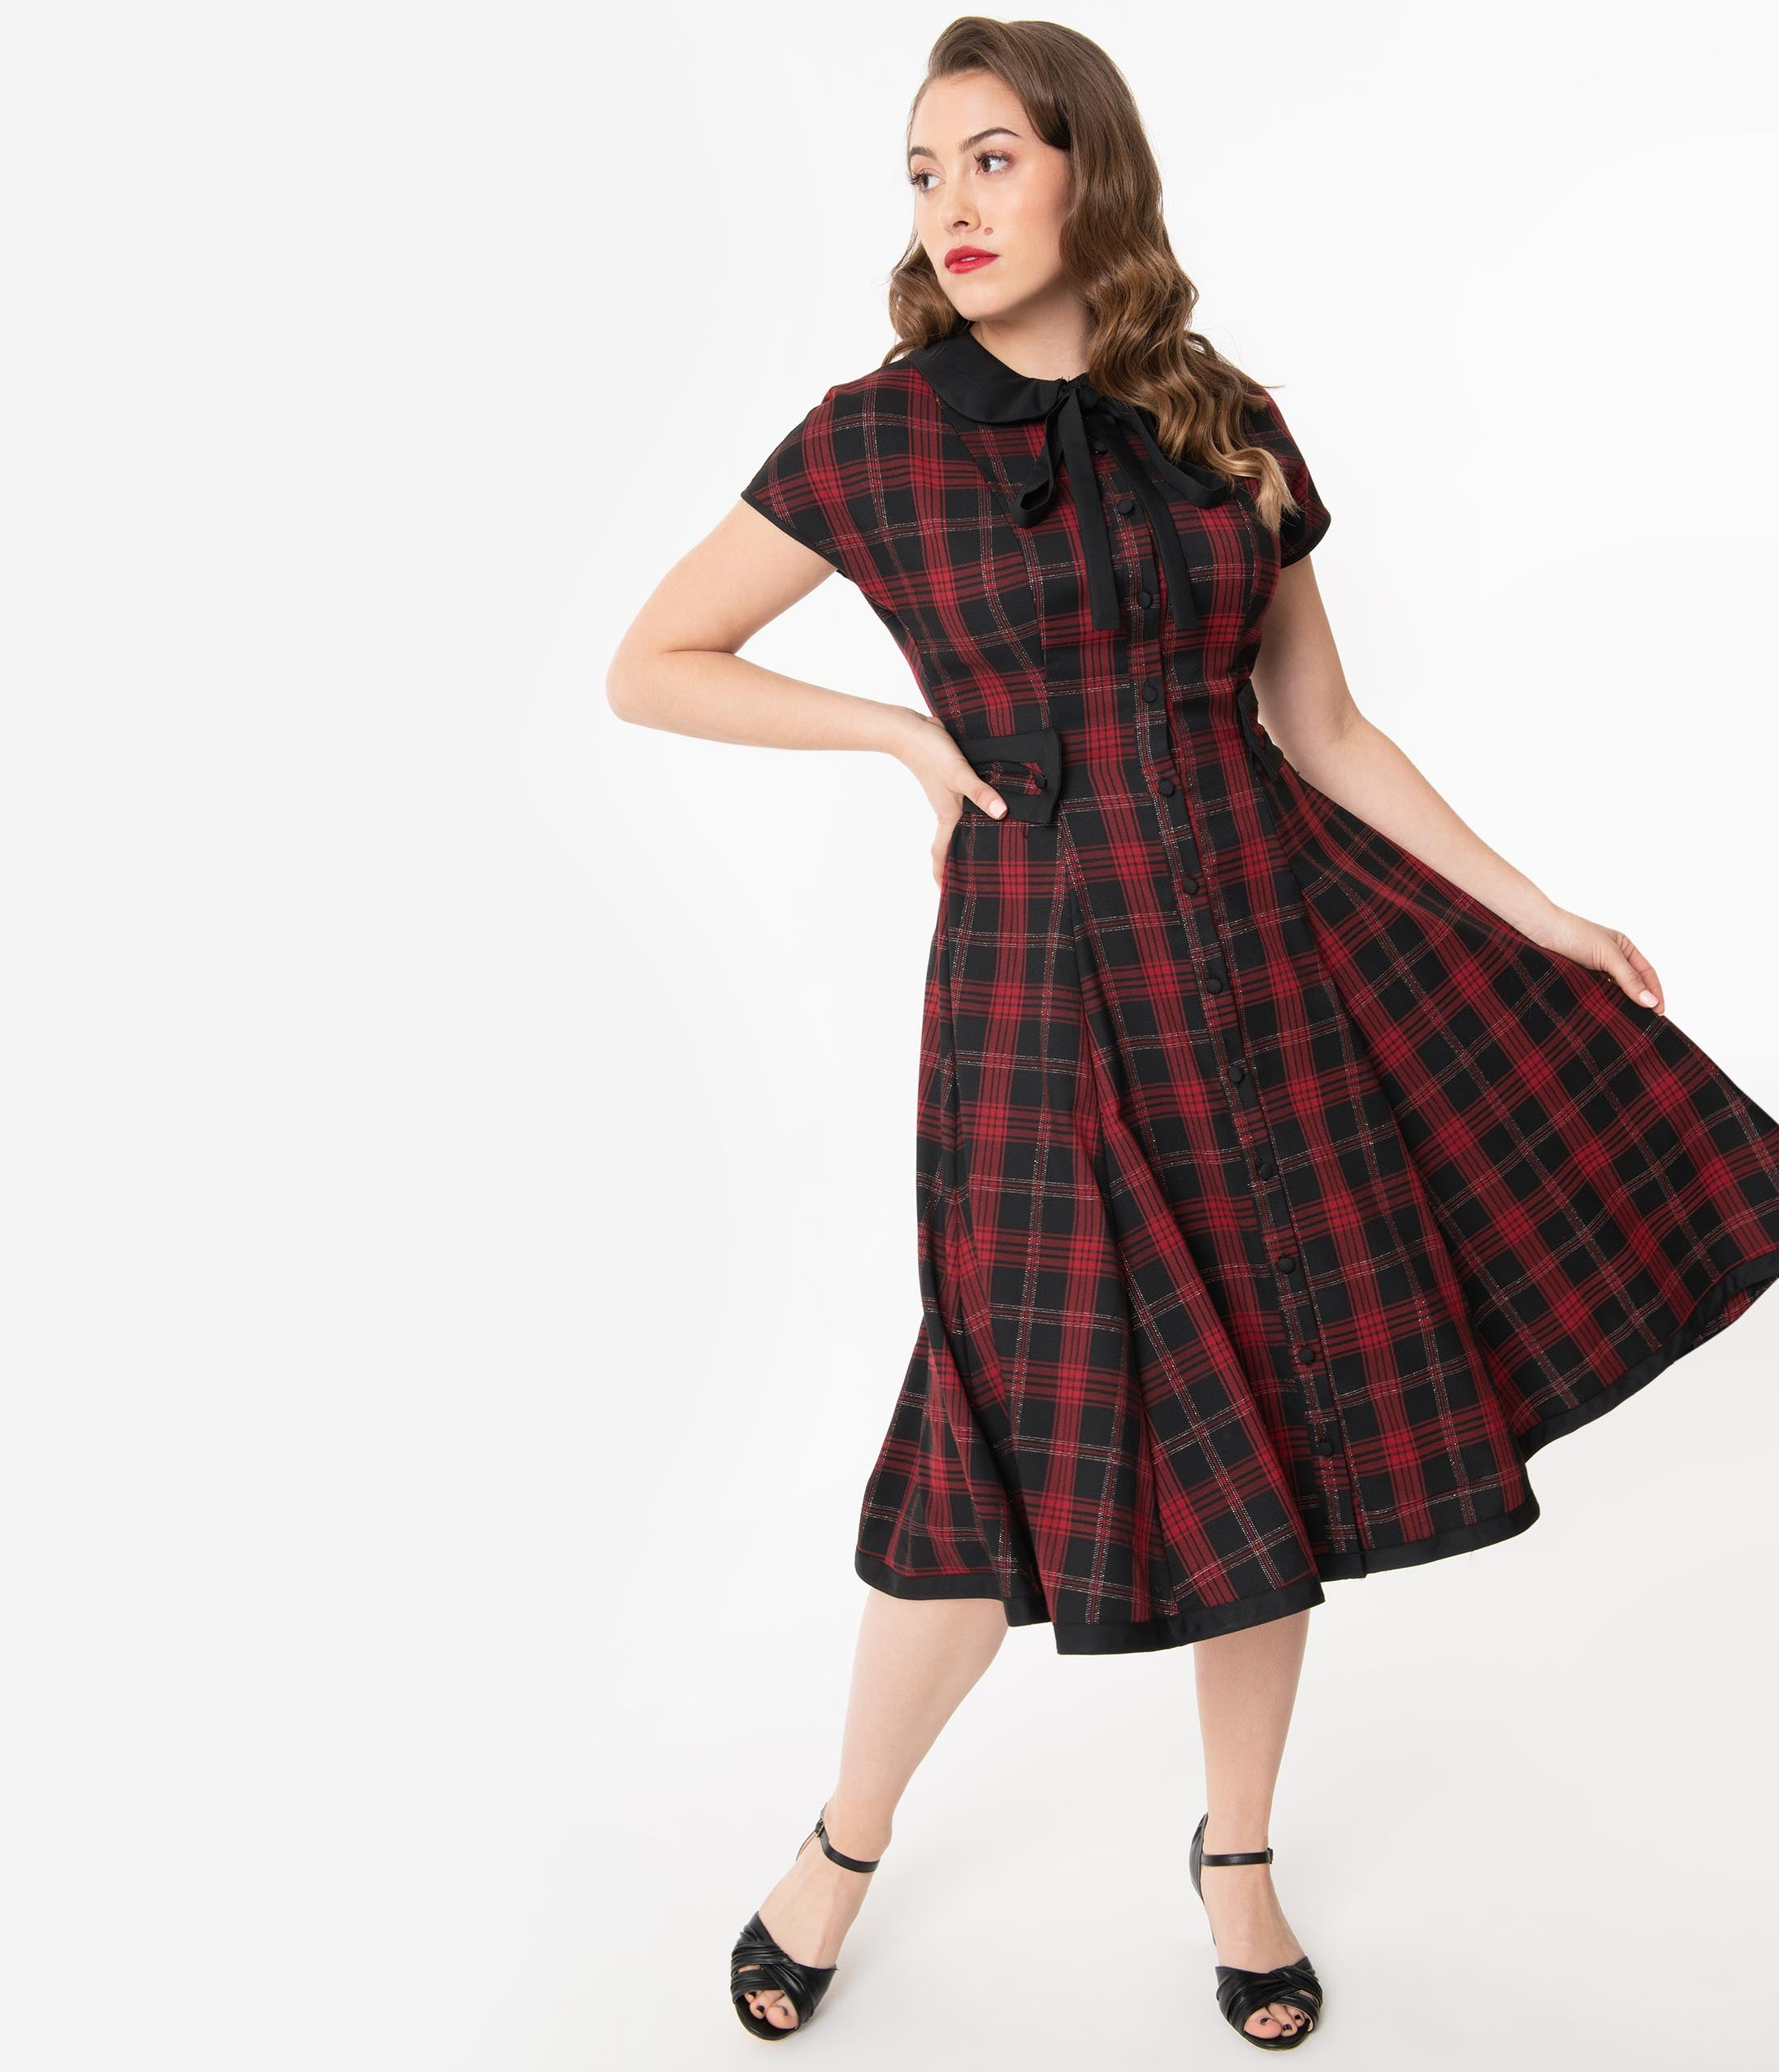 Pin Up Girl Costumes | Pin Up Costumes Unique Vintage 1950S Black  Red Plaid Brandwyn Swing Dress $118.00 AT vintagedancer.com